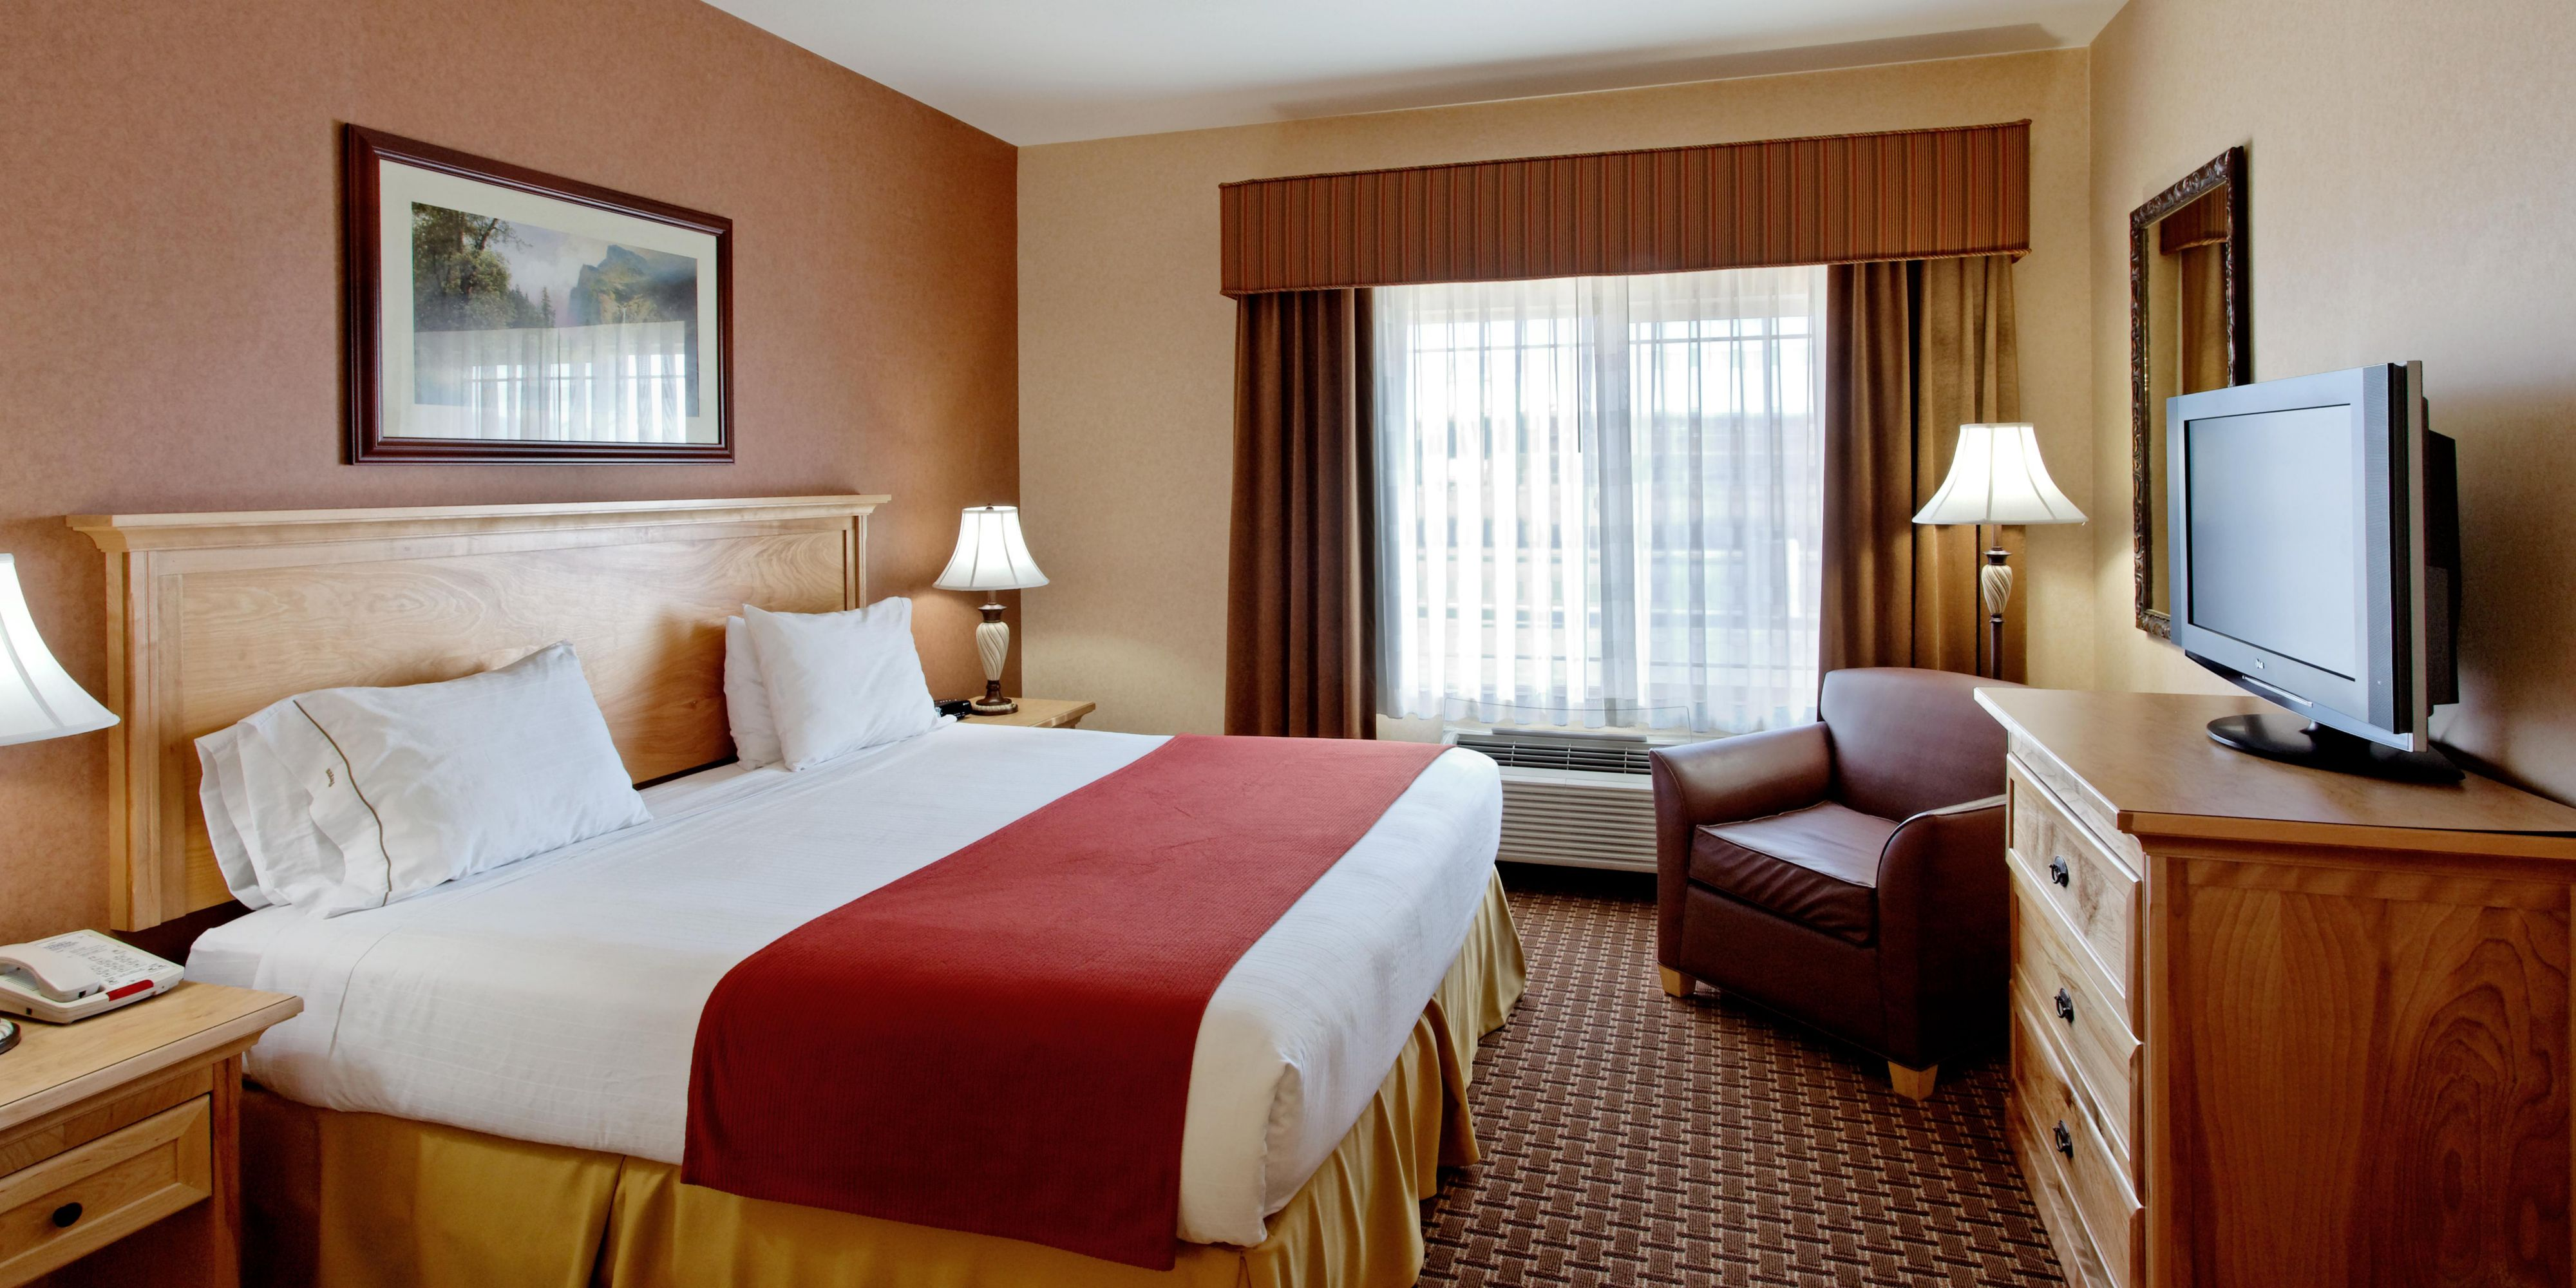 holiday-inn-express-and-suites-kalispell-2533244003-2x1